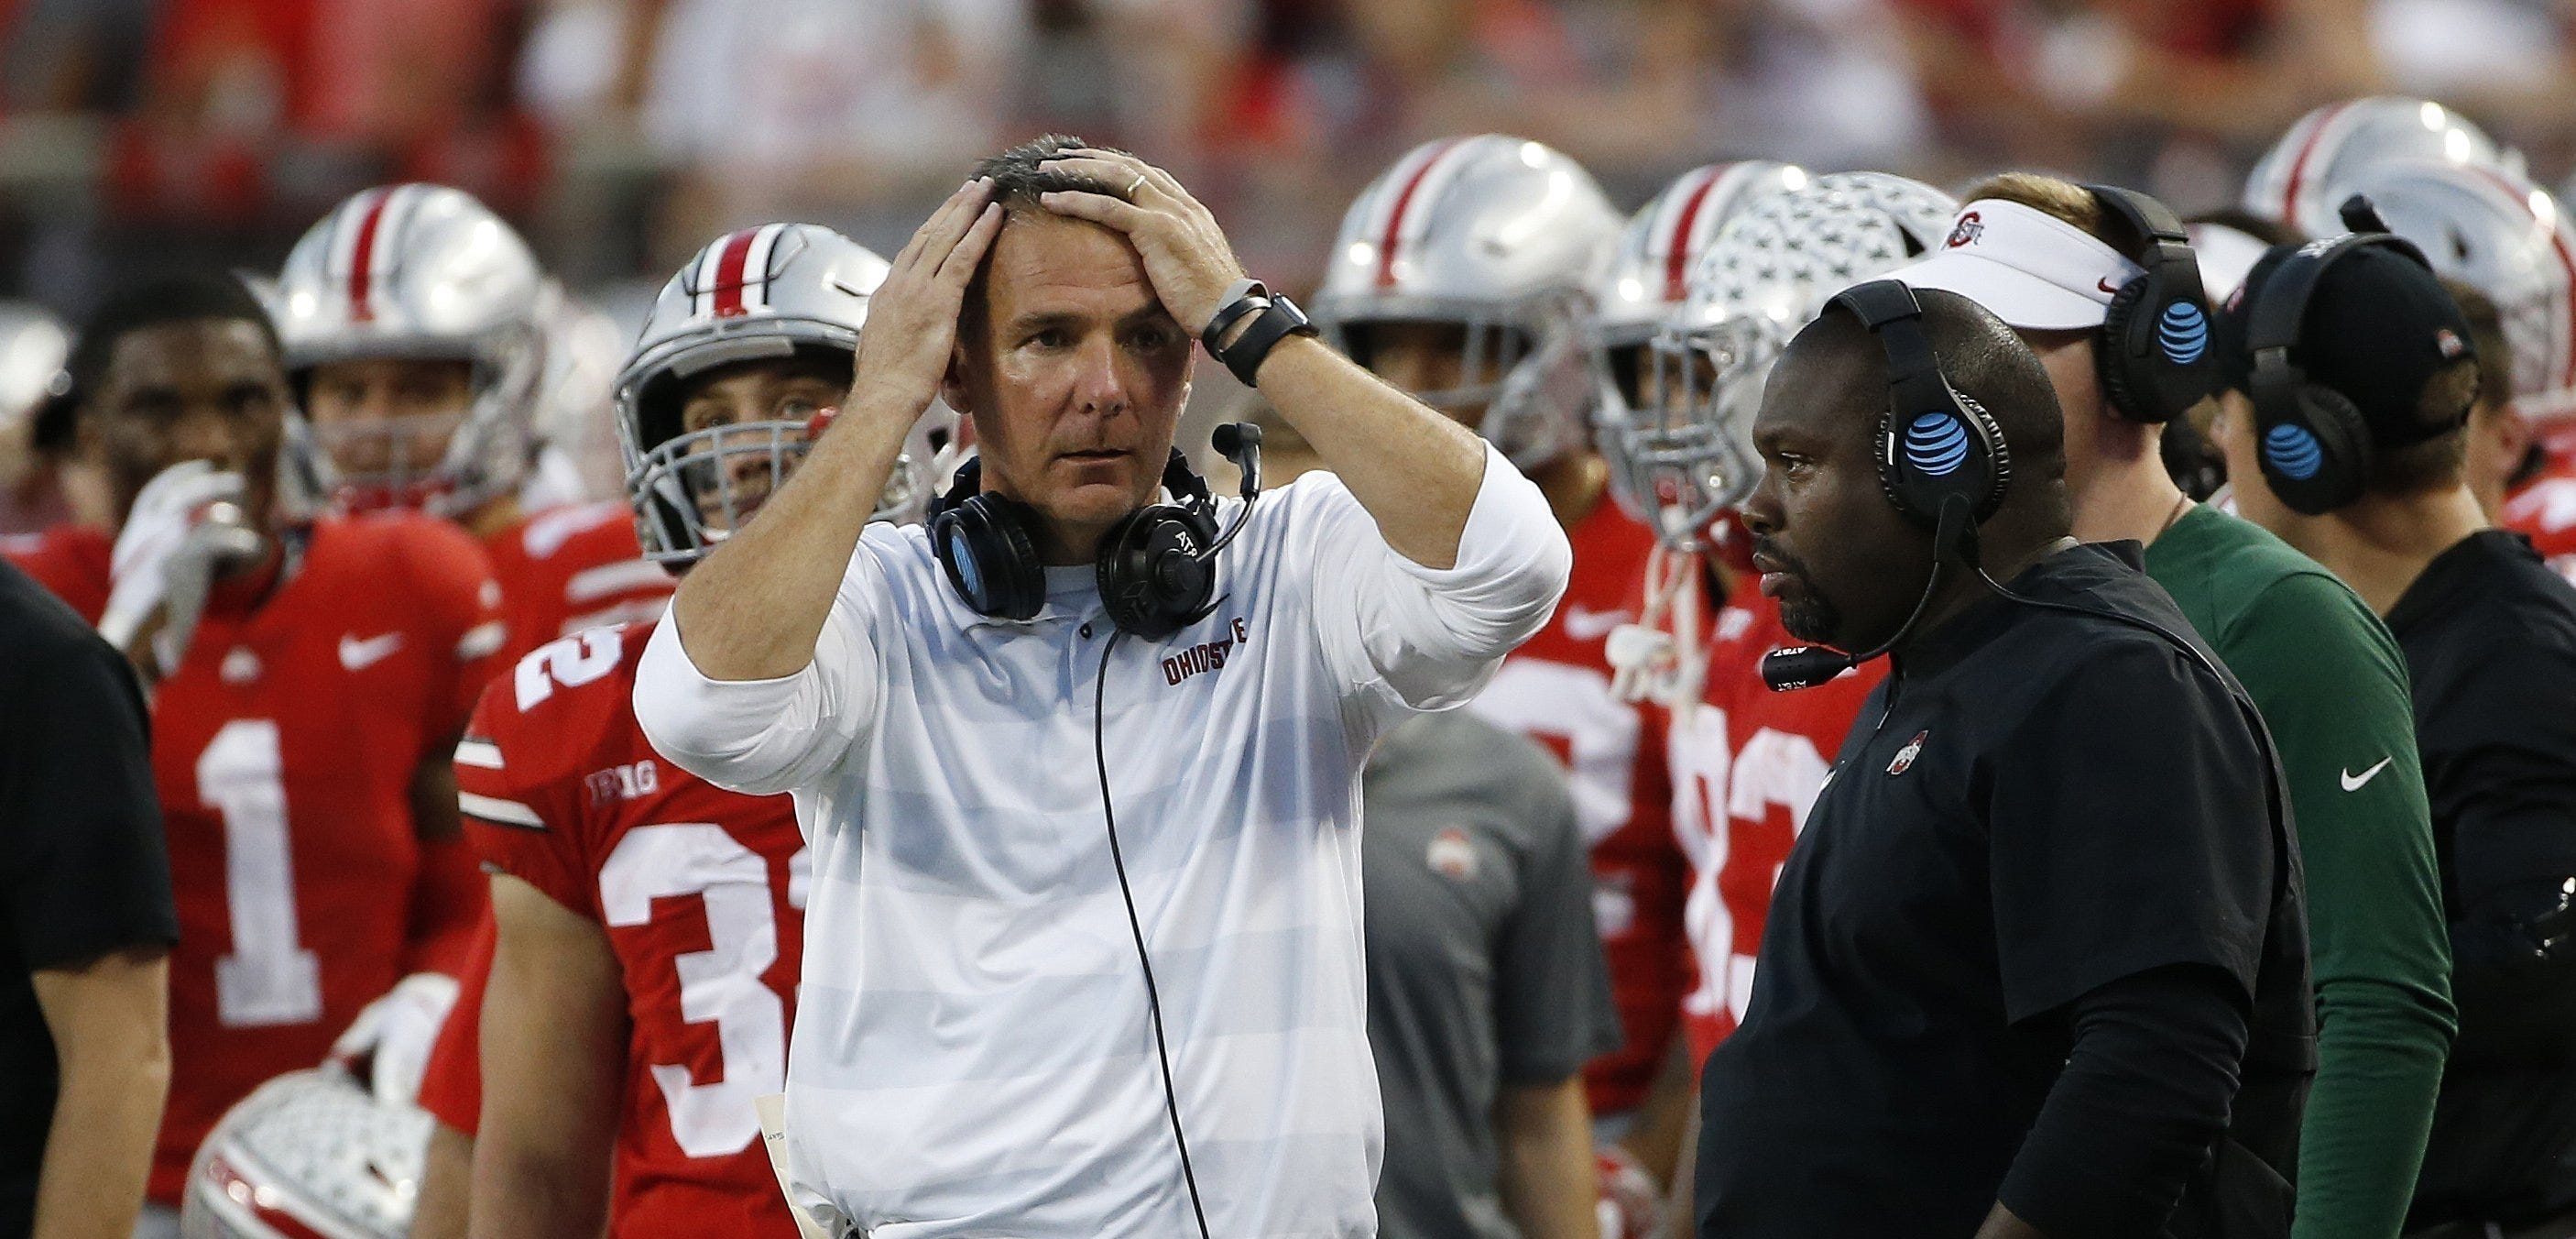 Urban Meyer dealt with severe headaches, caused by an arachnoid cyst, at times during the 2018 season, including in an October game against Indiana.